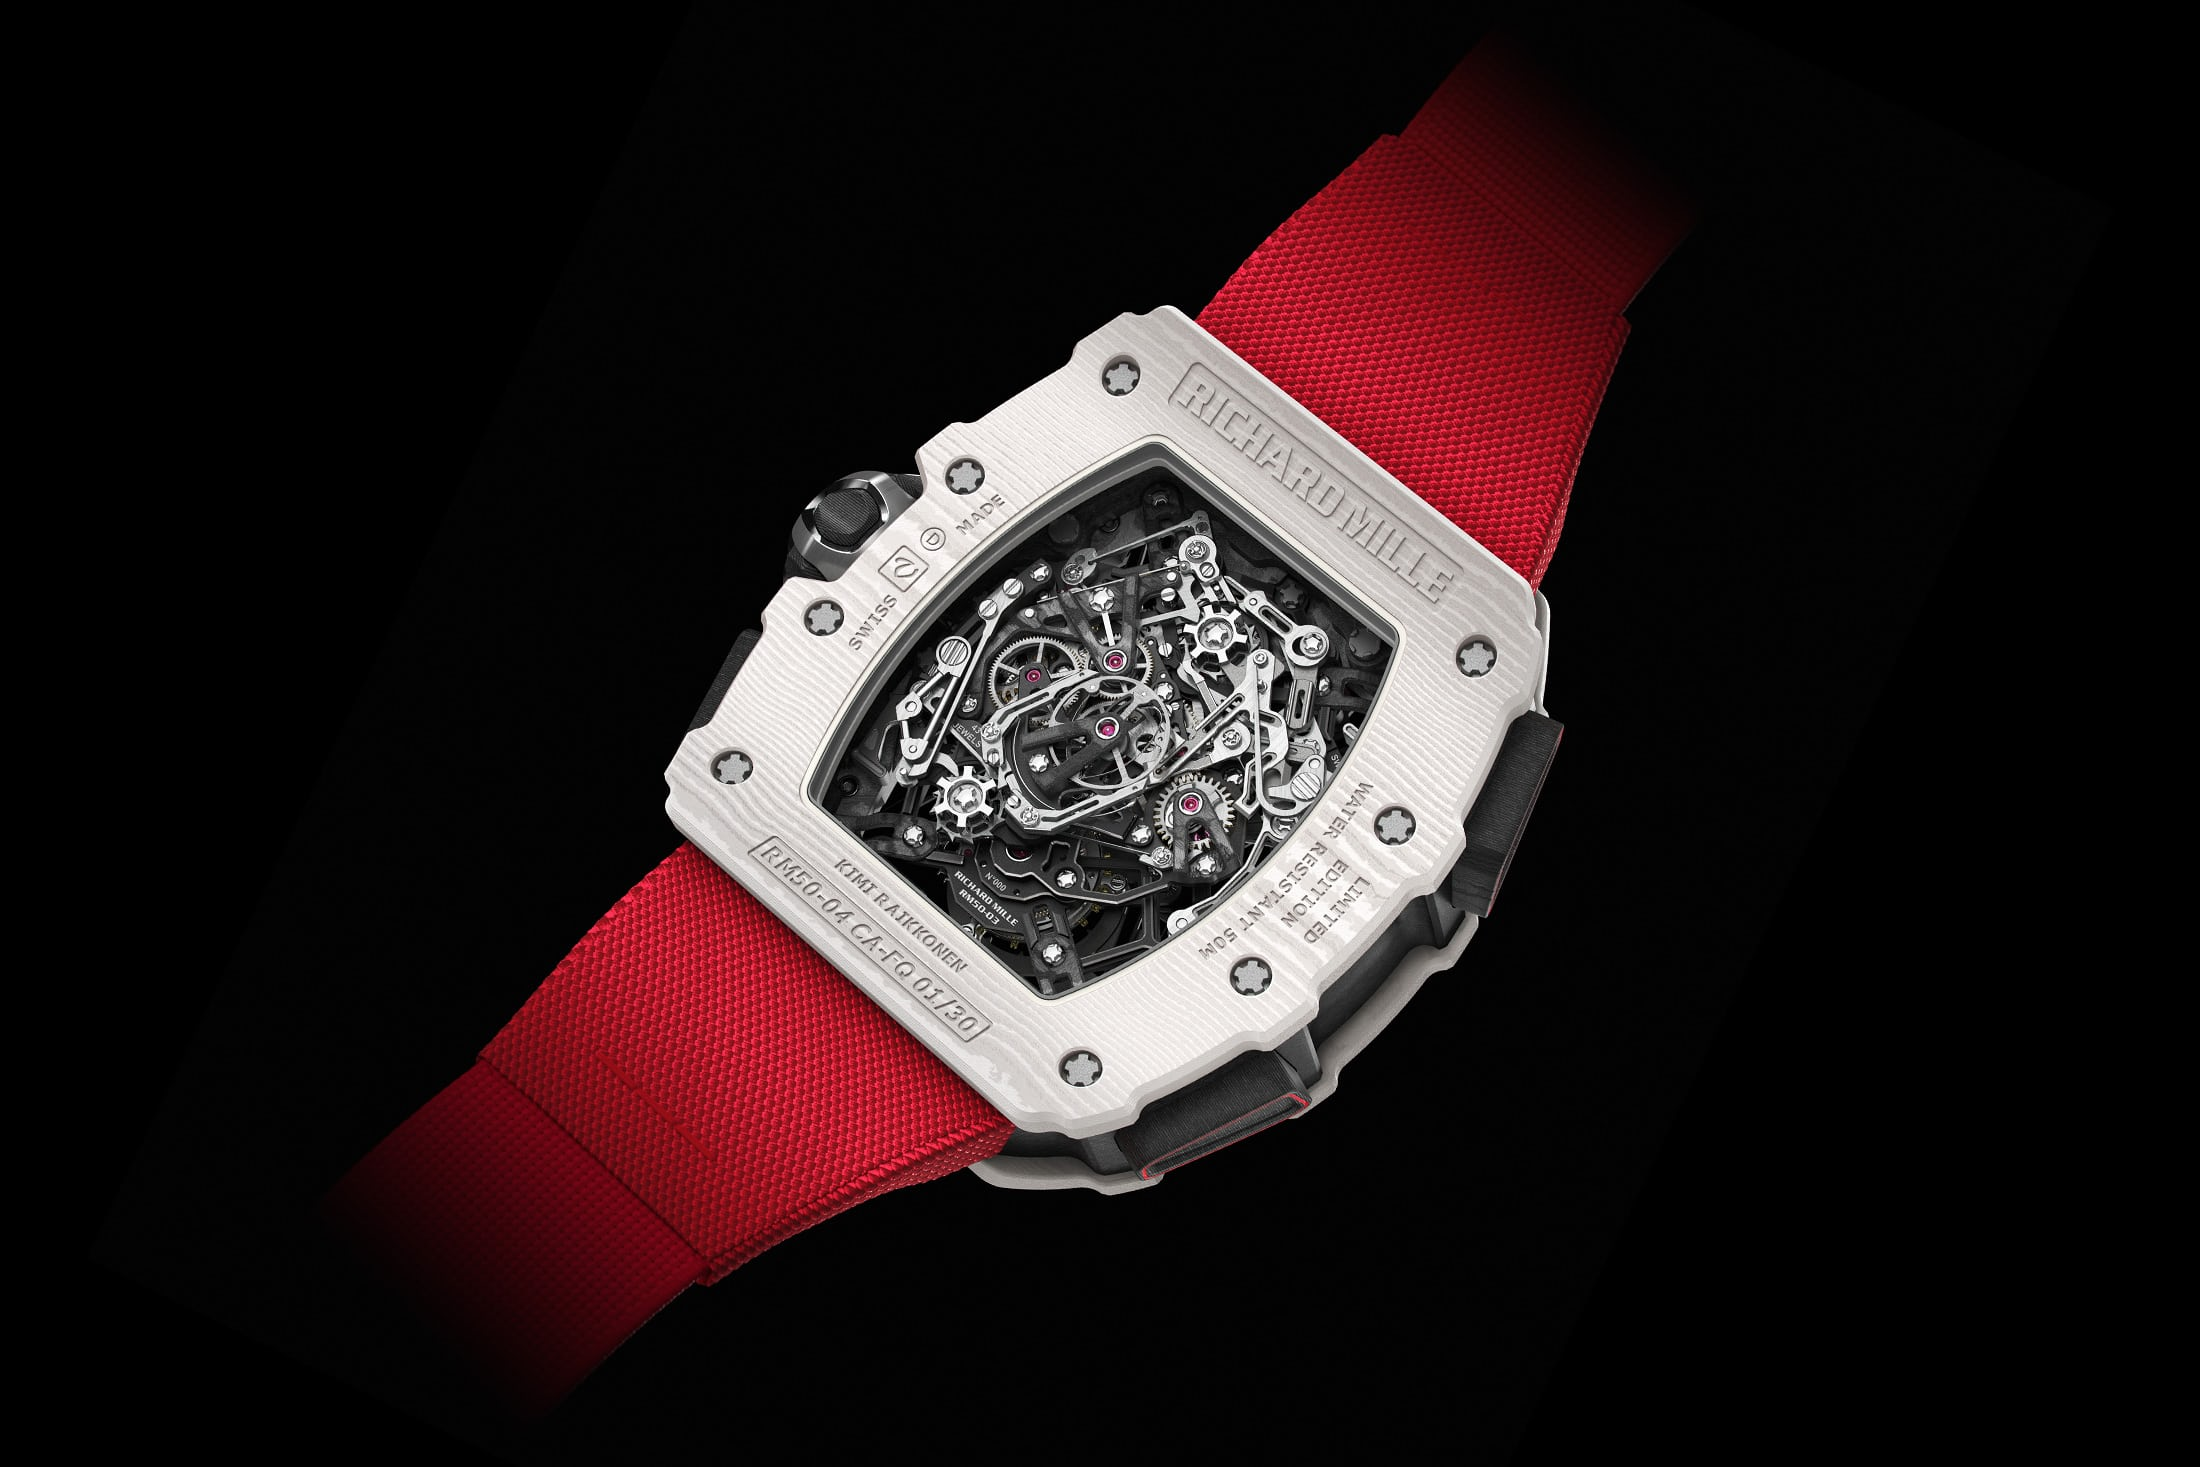 Richard-Mille-RM-50-04-Tourbillon-Split-Seconds-Chronograph-Kimi-Raikkonen-Limited-Edition-3